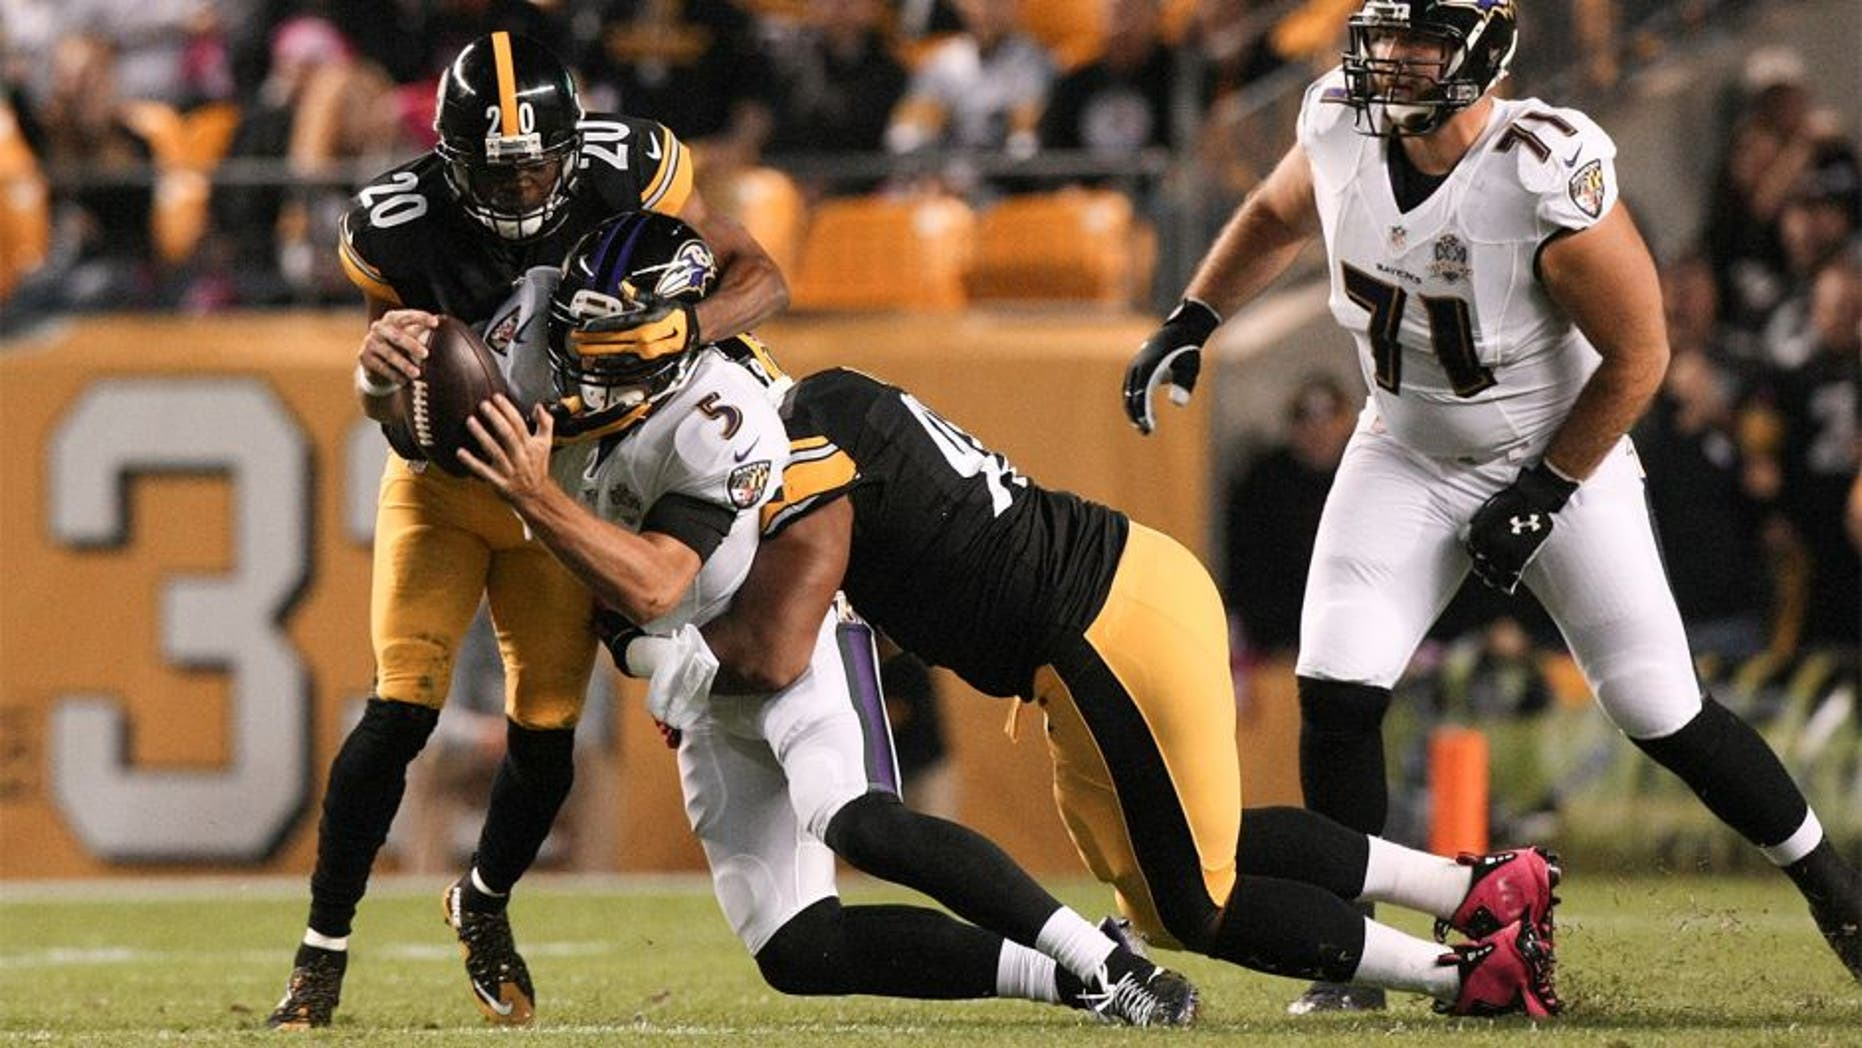 Oct 1, 2015; Pittsburgh, PA, USA; Baltimore Ravens quarterback Joe Flacco (5) is sacked by Pittsburgh Steelers safety Will Allen (20) and defensive end Stephon Tuitt (91) during the first quarter at Heinz Field. Mandatory Credit: Jason Bridge-USA TODAY Sports